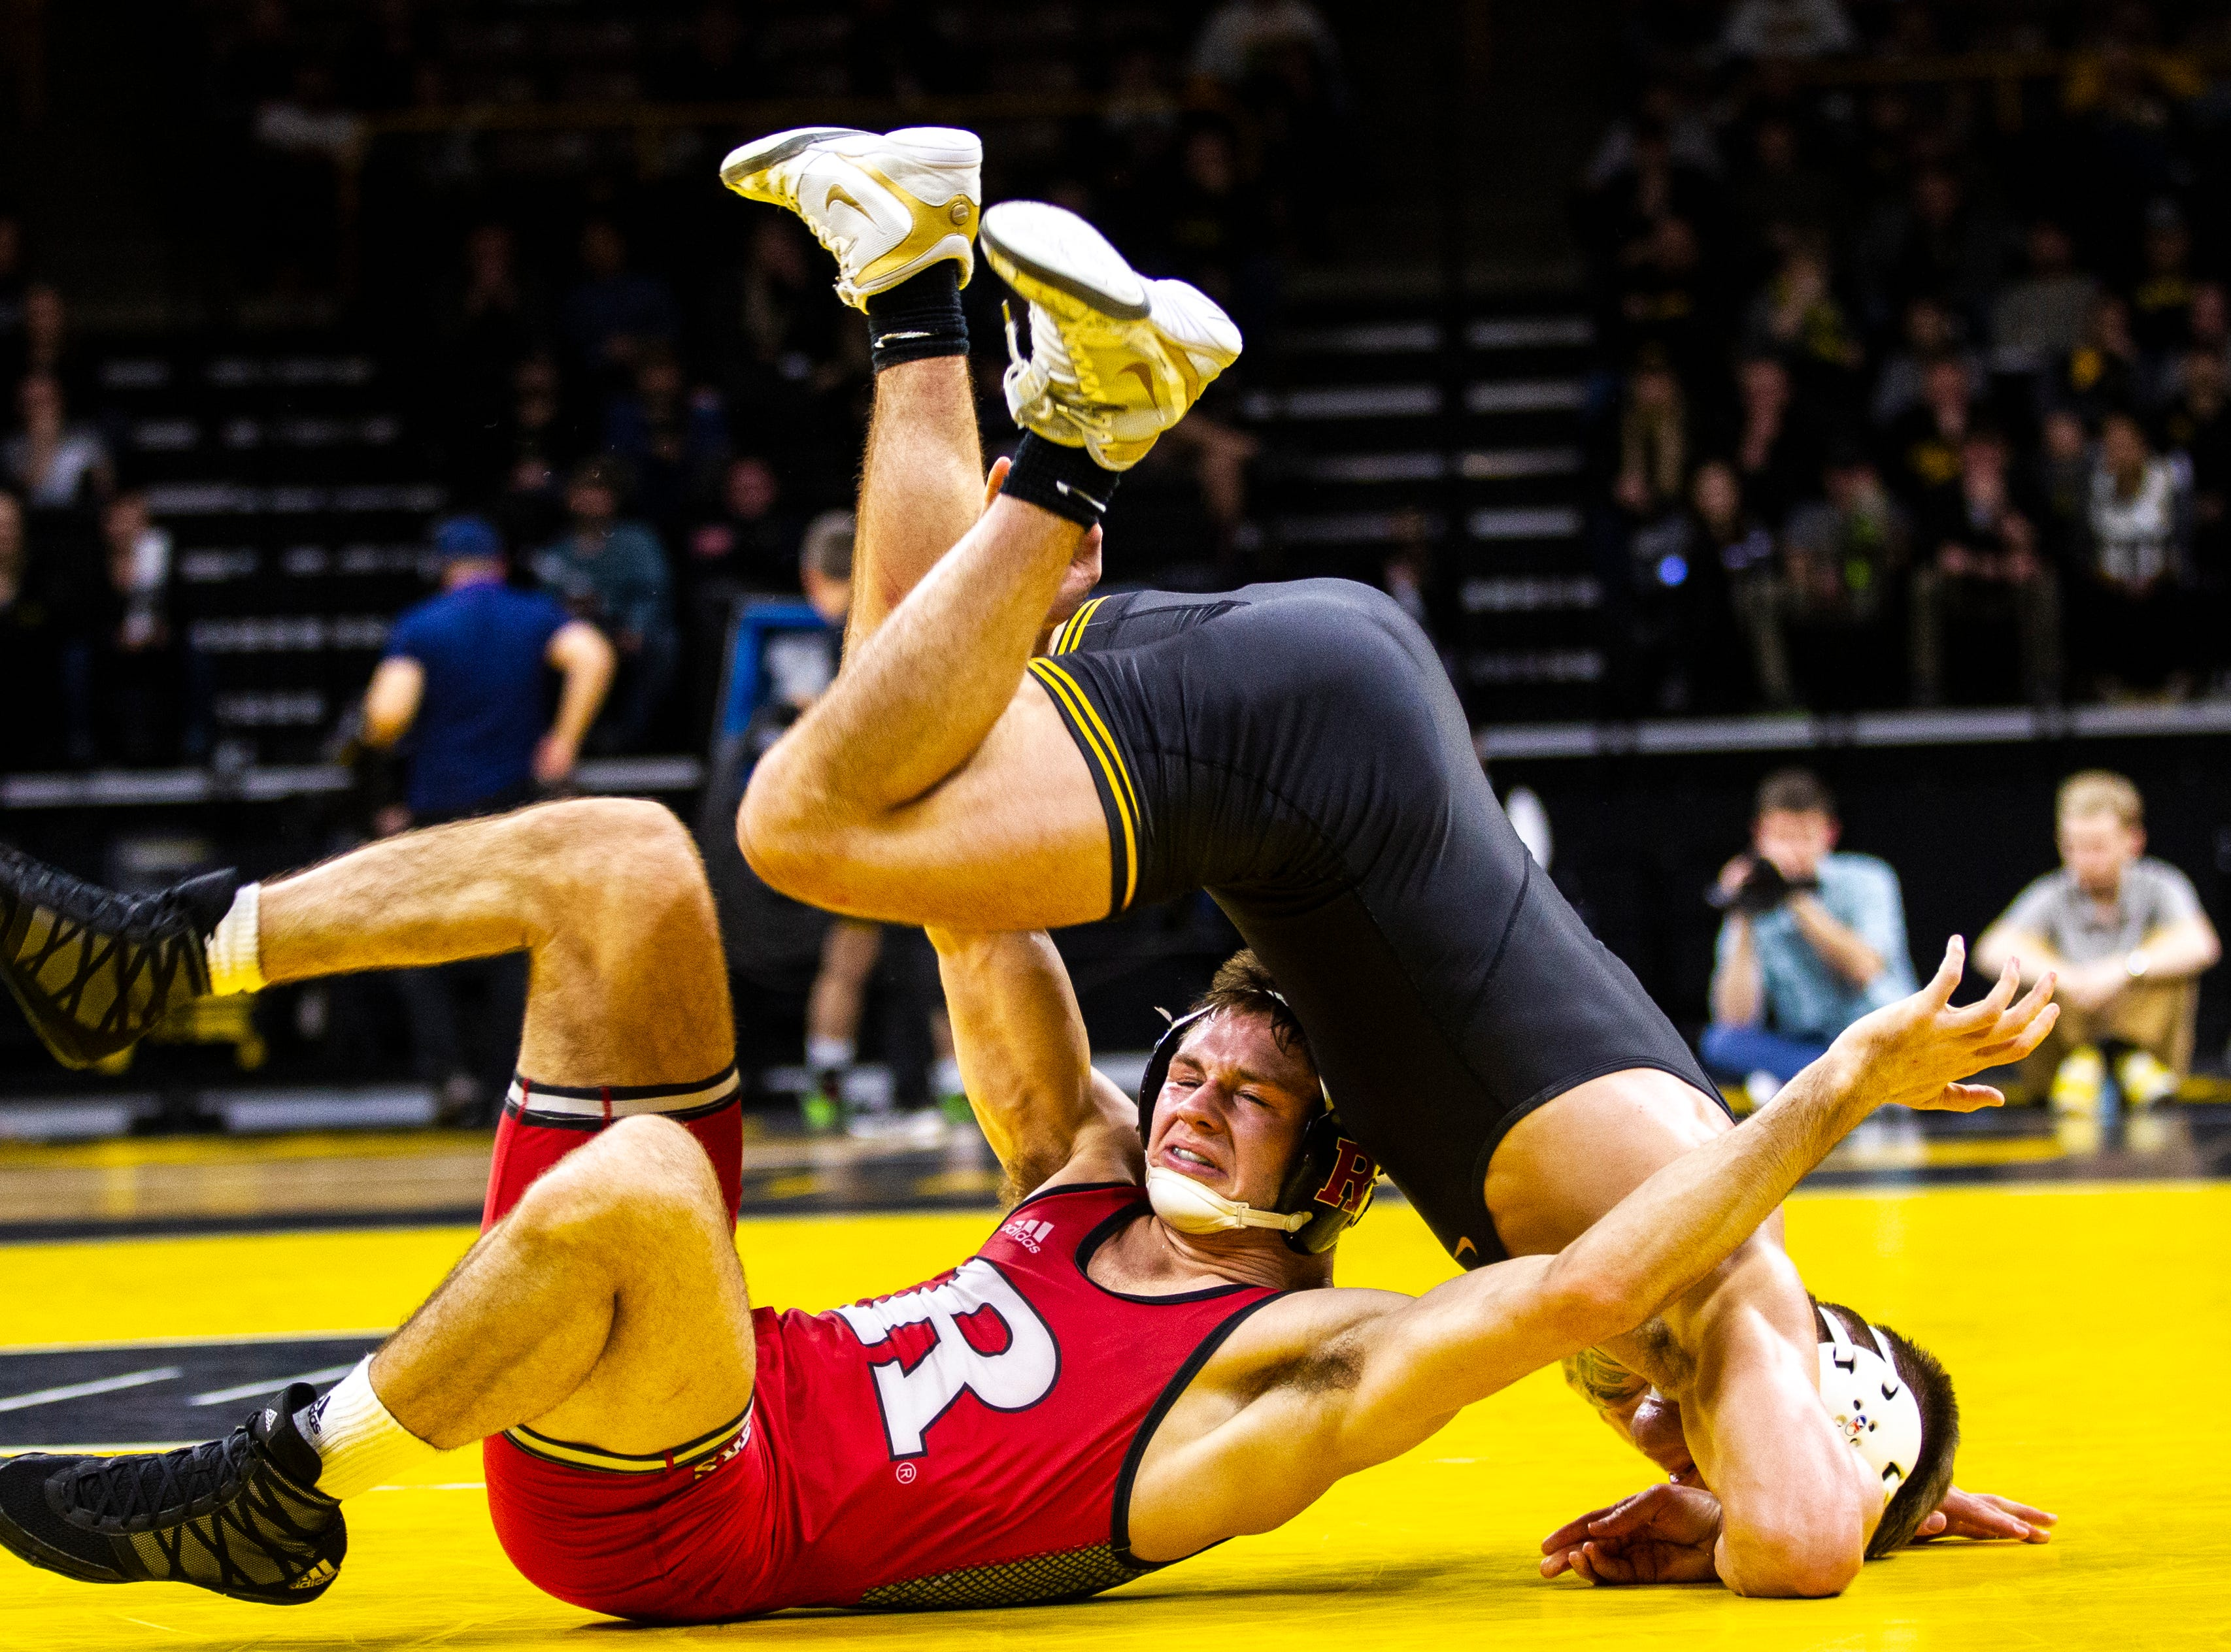 Iowa's Cash Wilcke, right, wrestles Rutgers' Willie Scott at 184 during a NCAA Big Ten Conference wrestling dual on Friday, Jan. 18, 2019, at Carver-Hawkeye Arena in Iowa City, Iowa.